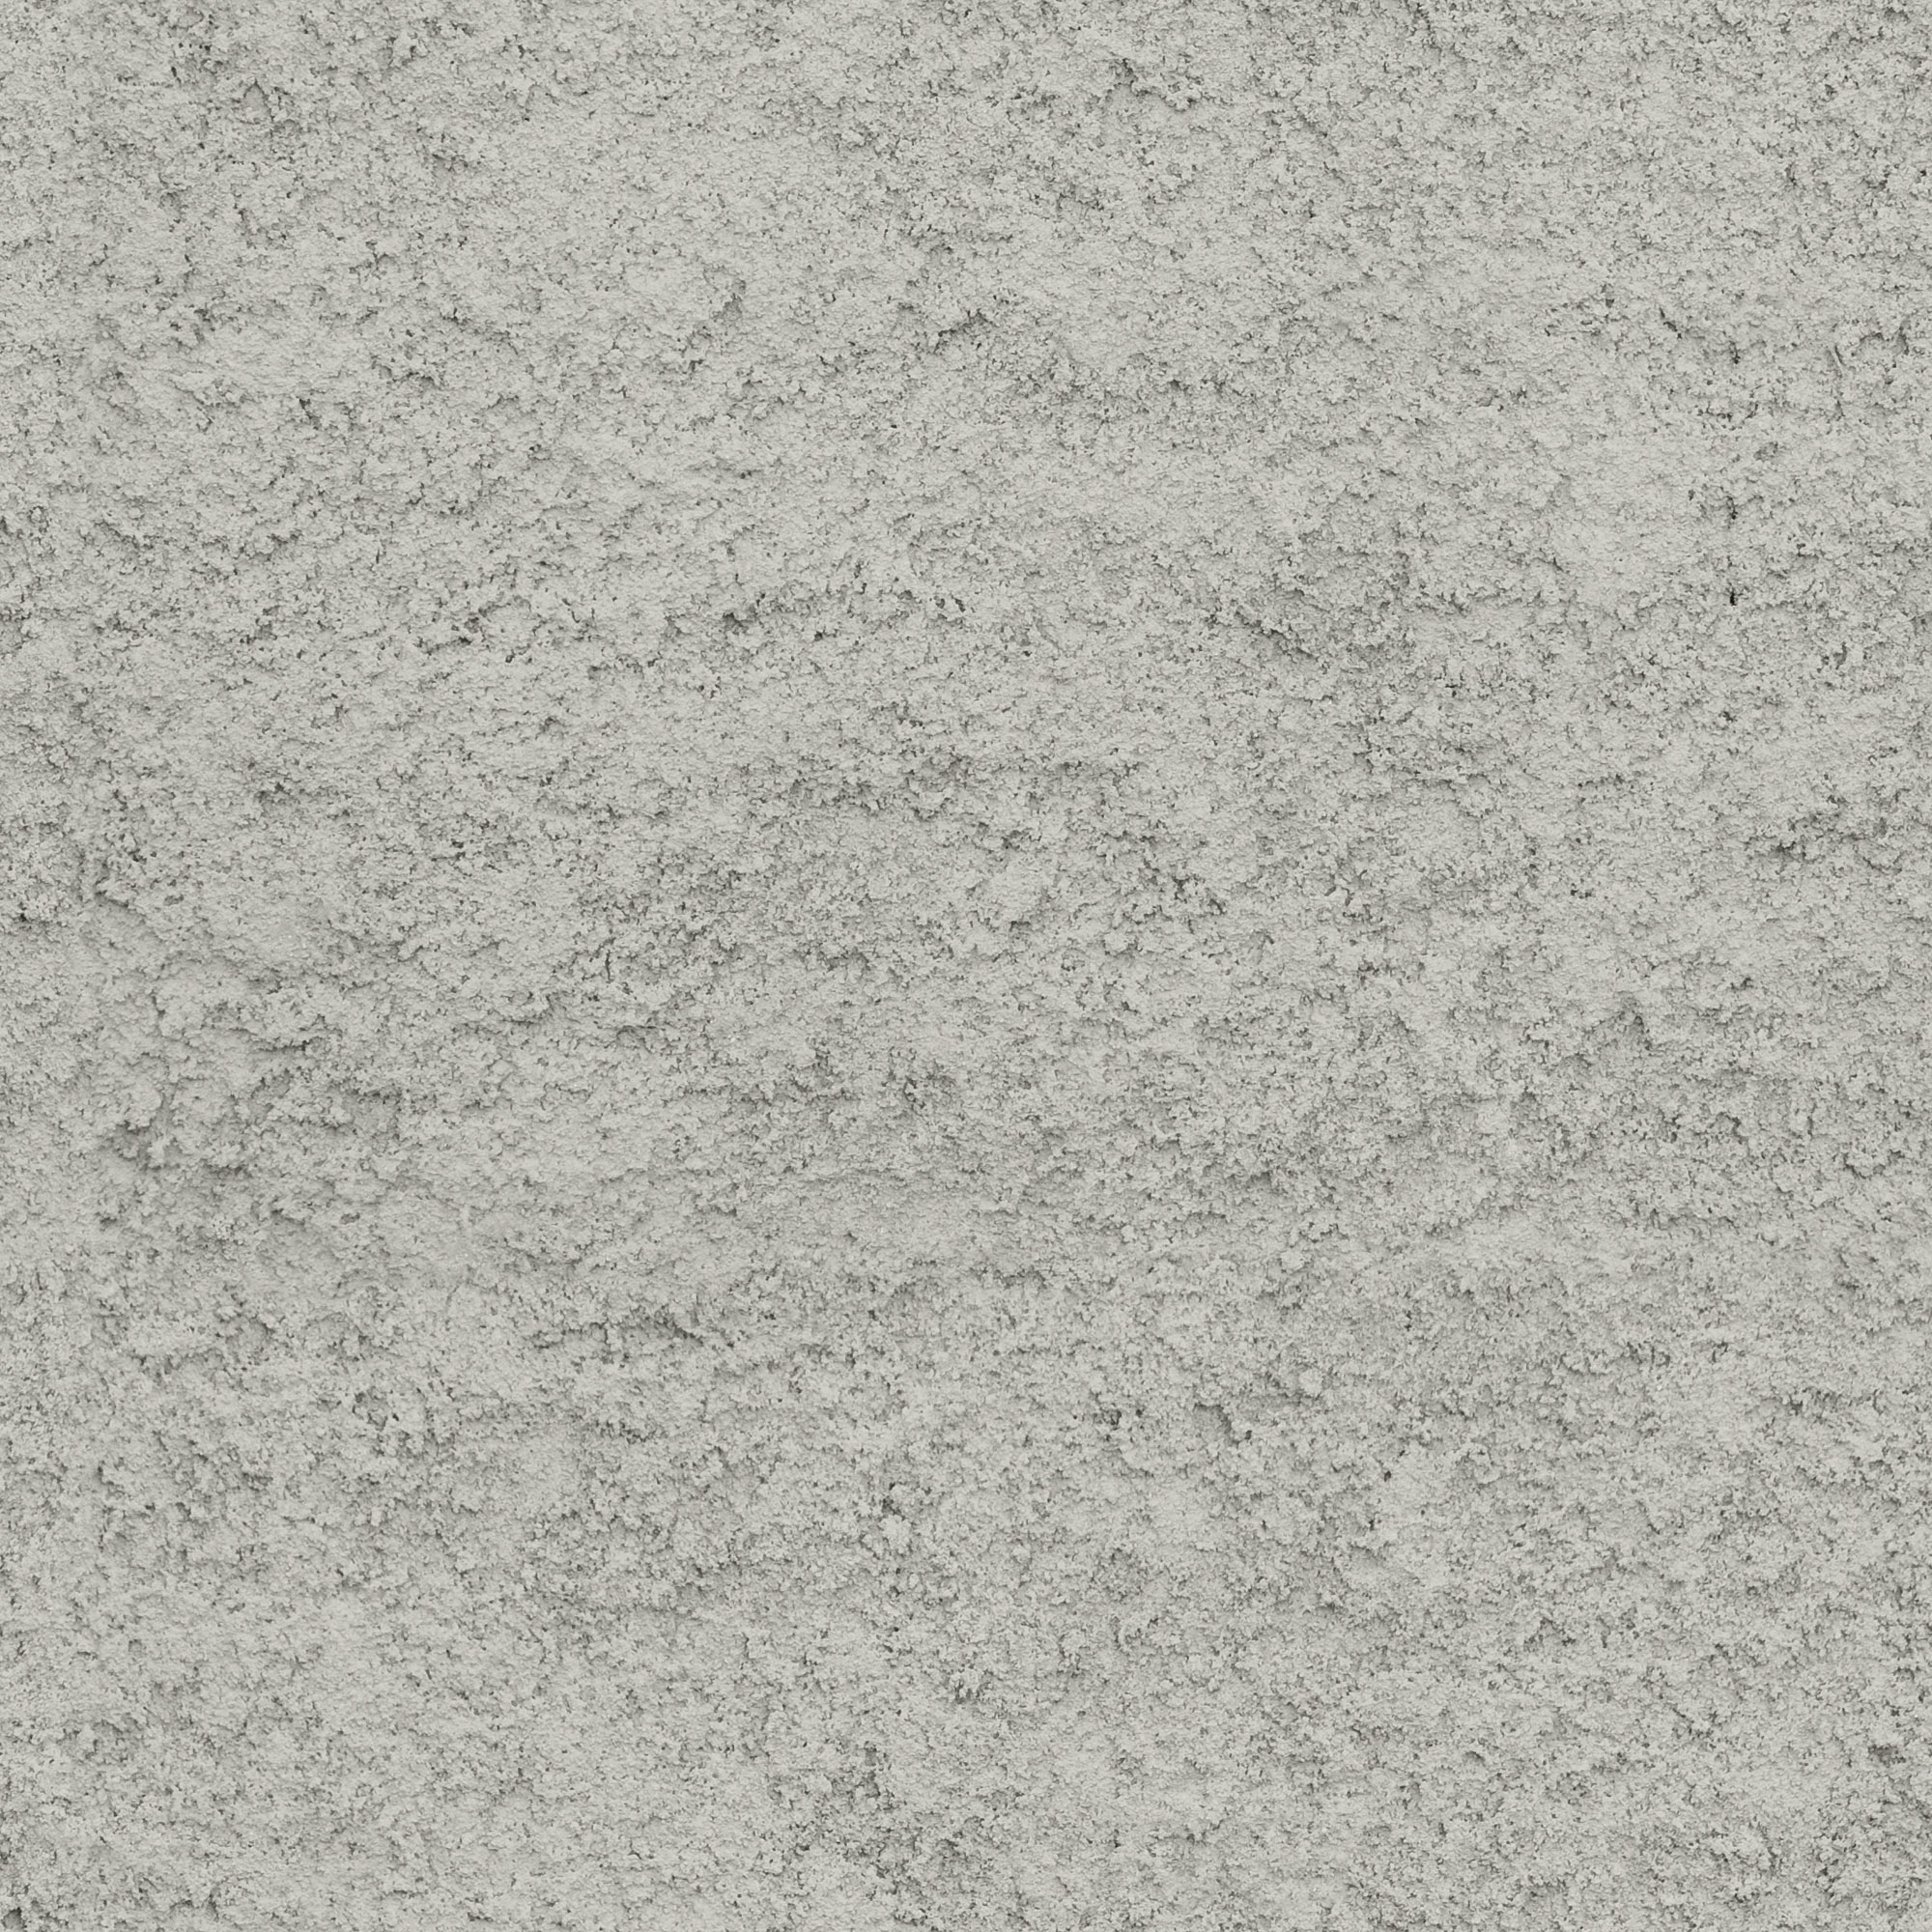 PolygonBlog » concrete-wall-texture-high-res